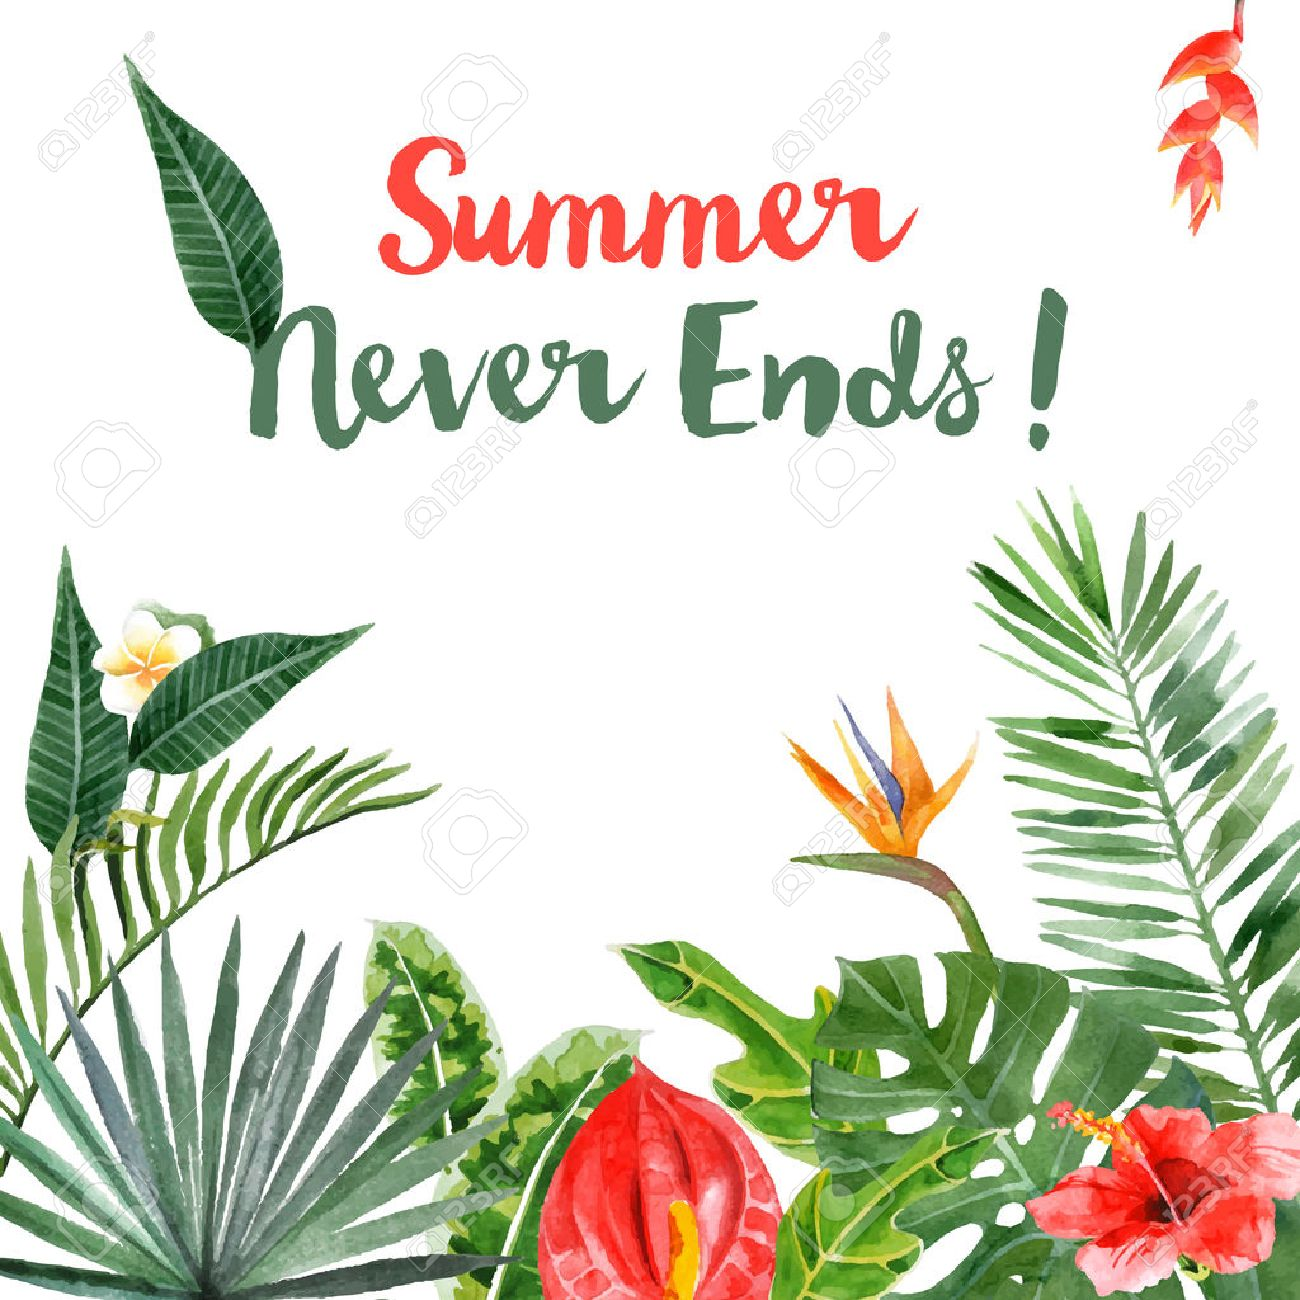 Background with hand drawn watercolor tropical plants - 42419424